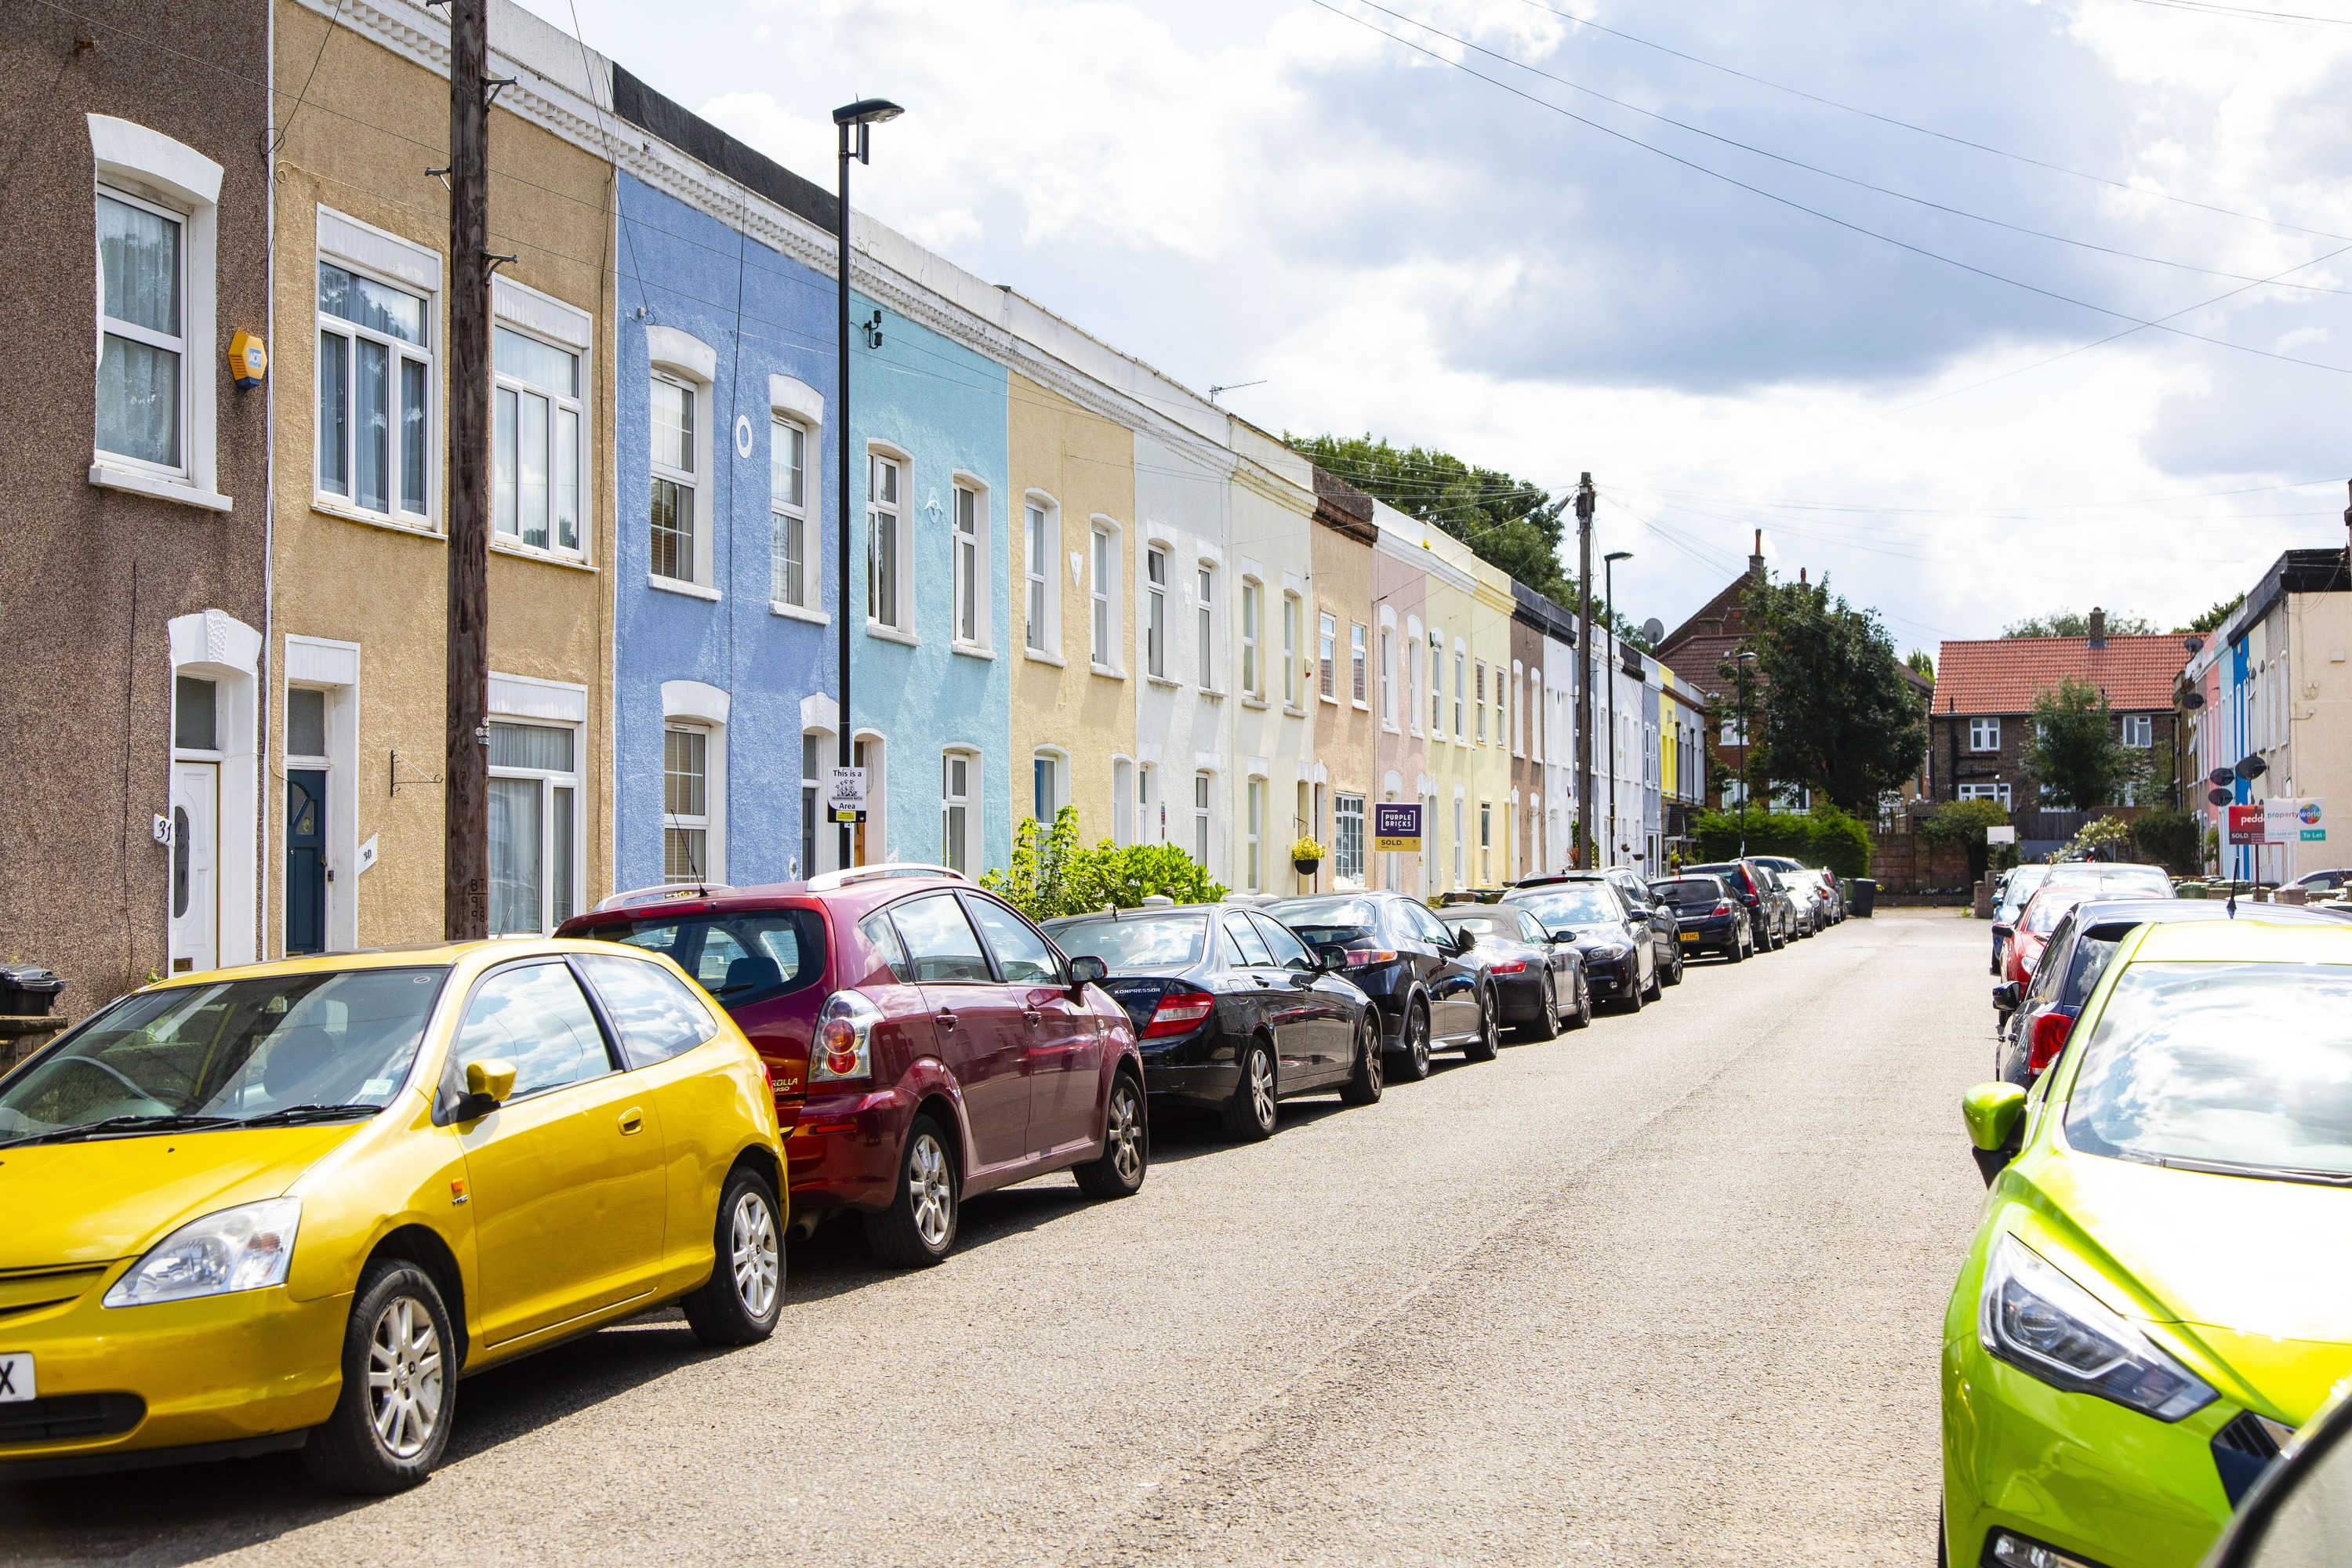 A street of colourful houses in Lower Sydenham